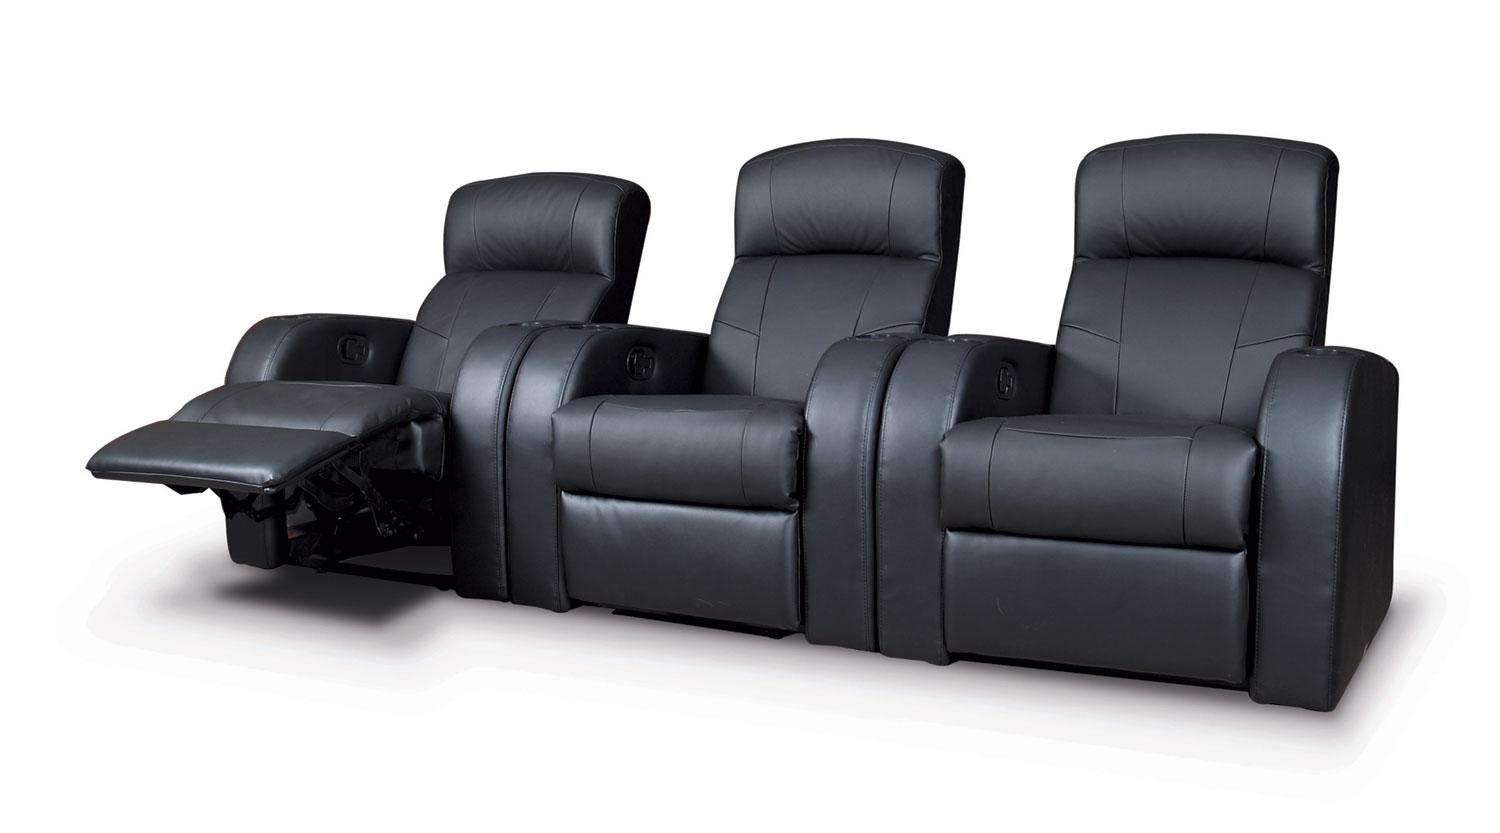 Cyrus 3 Seat Leather Theater Seating Set